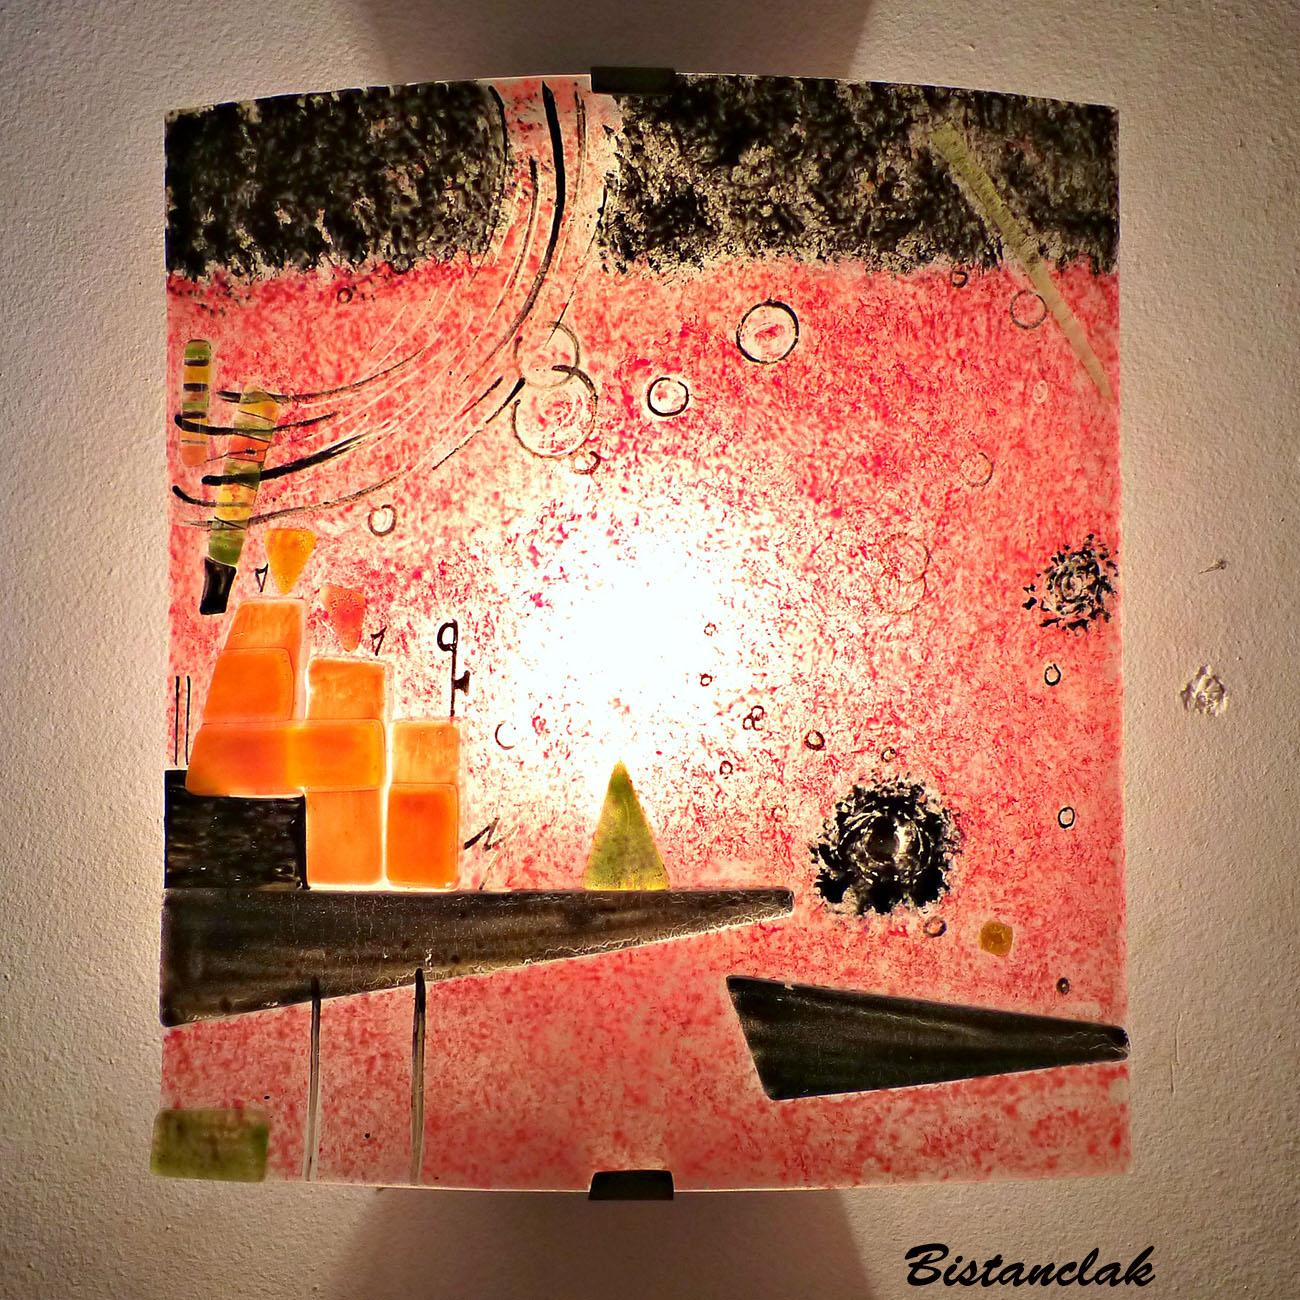 Applique murale artisanale coloree rouge au motif geometrique d apres kandinsky